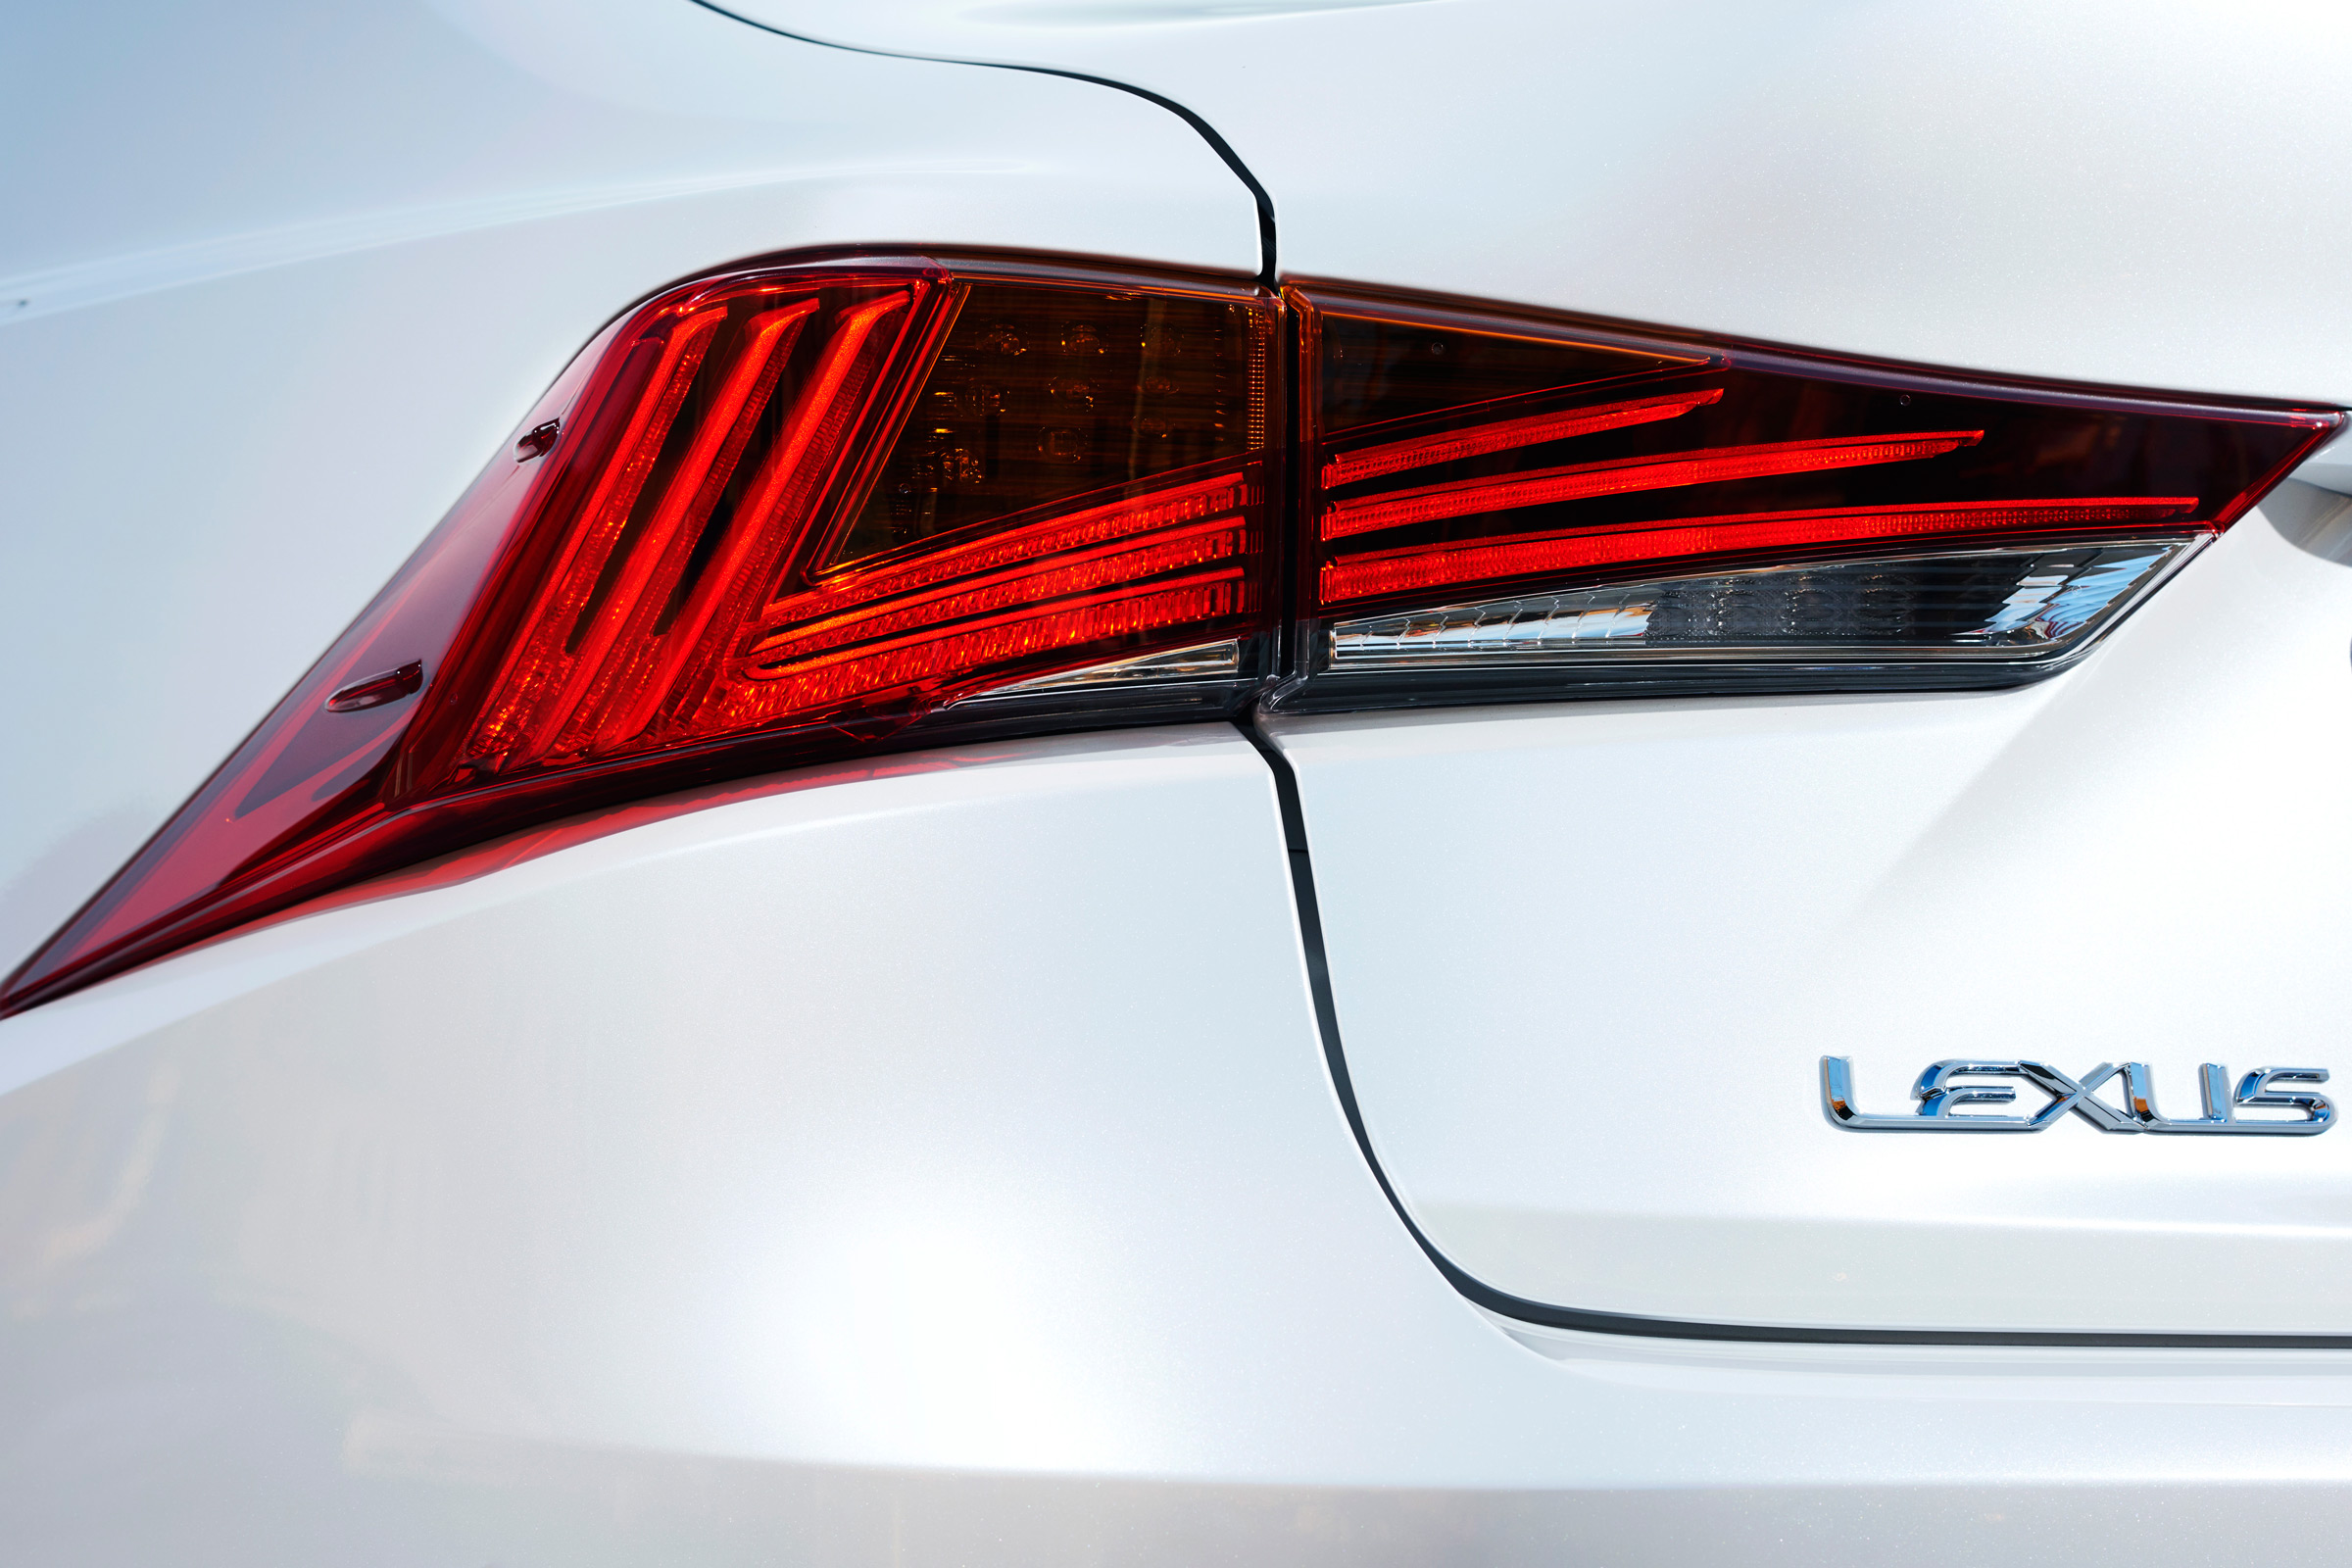 2017 Lexus IS 300h White Exterior View Taillight (Photo 13 of 13)